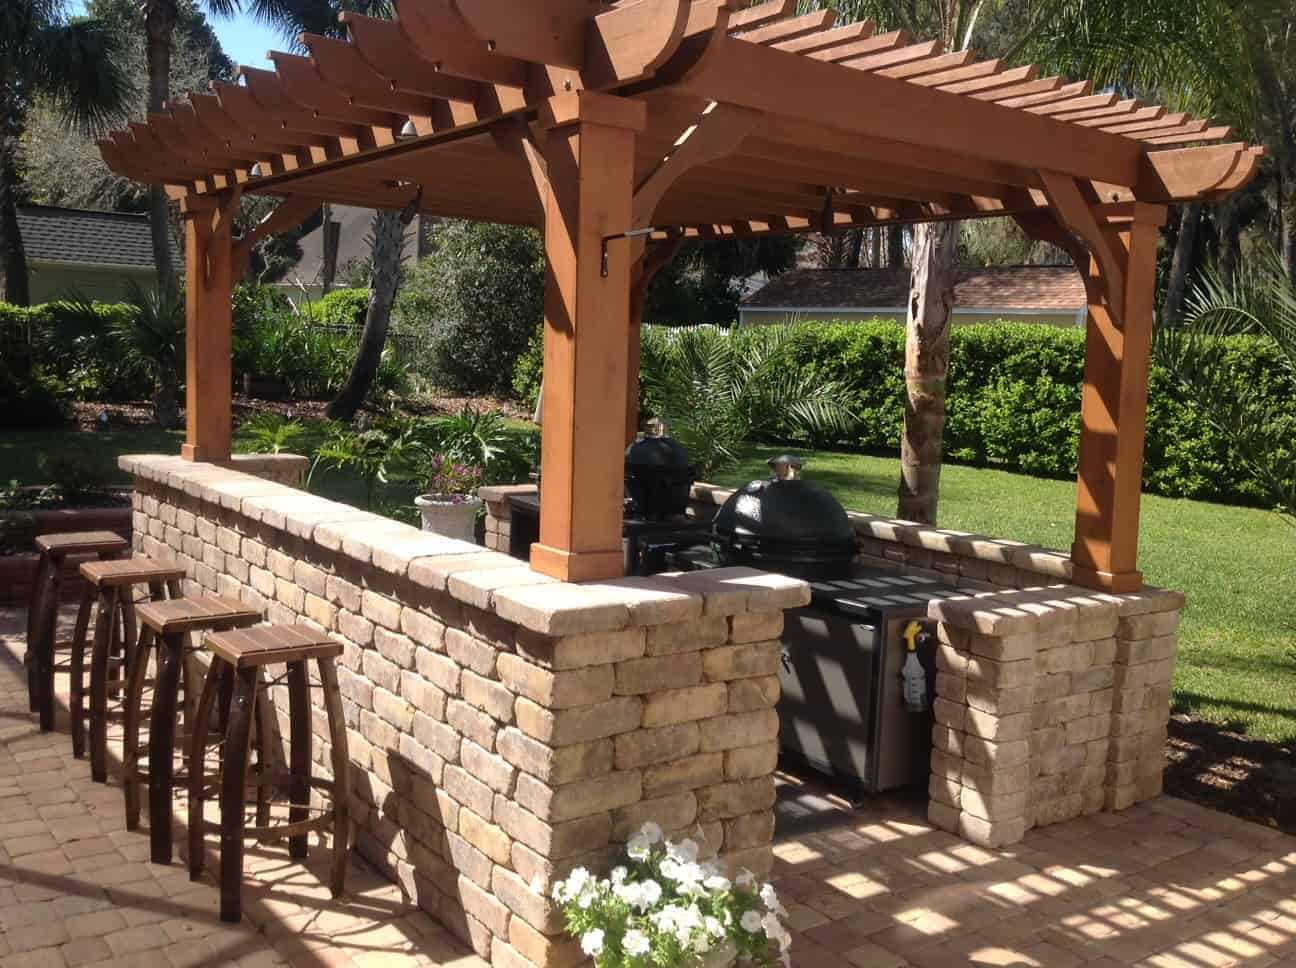 10x20 Pergola Kit Buy Our Big Kahuna 10x20 Wood Pergola